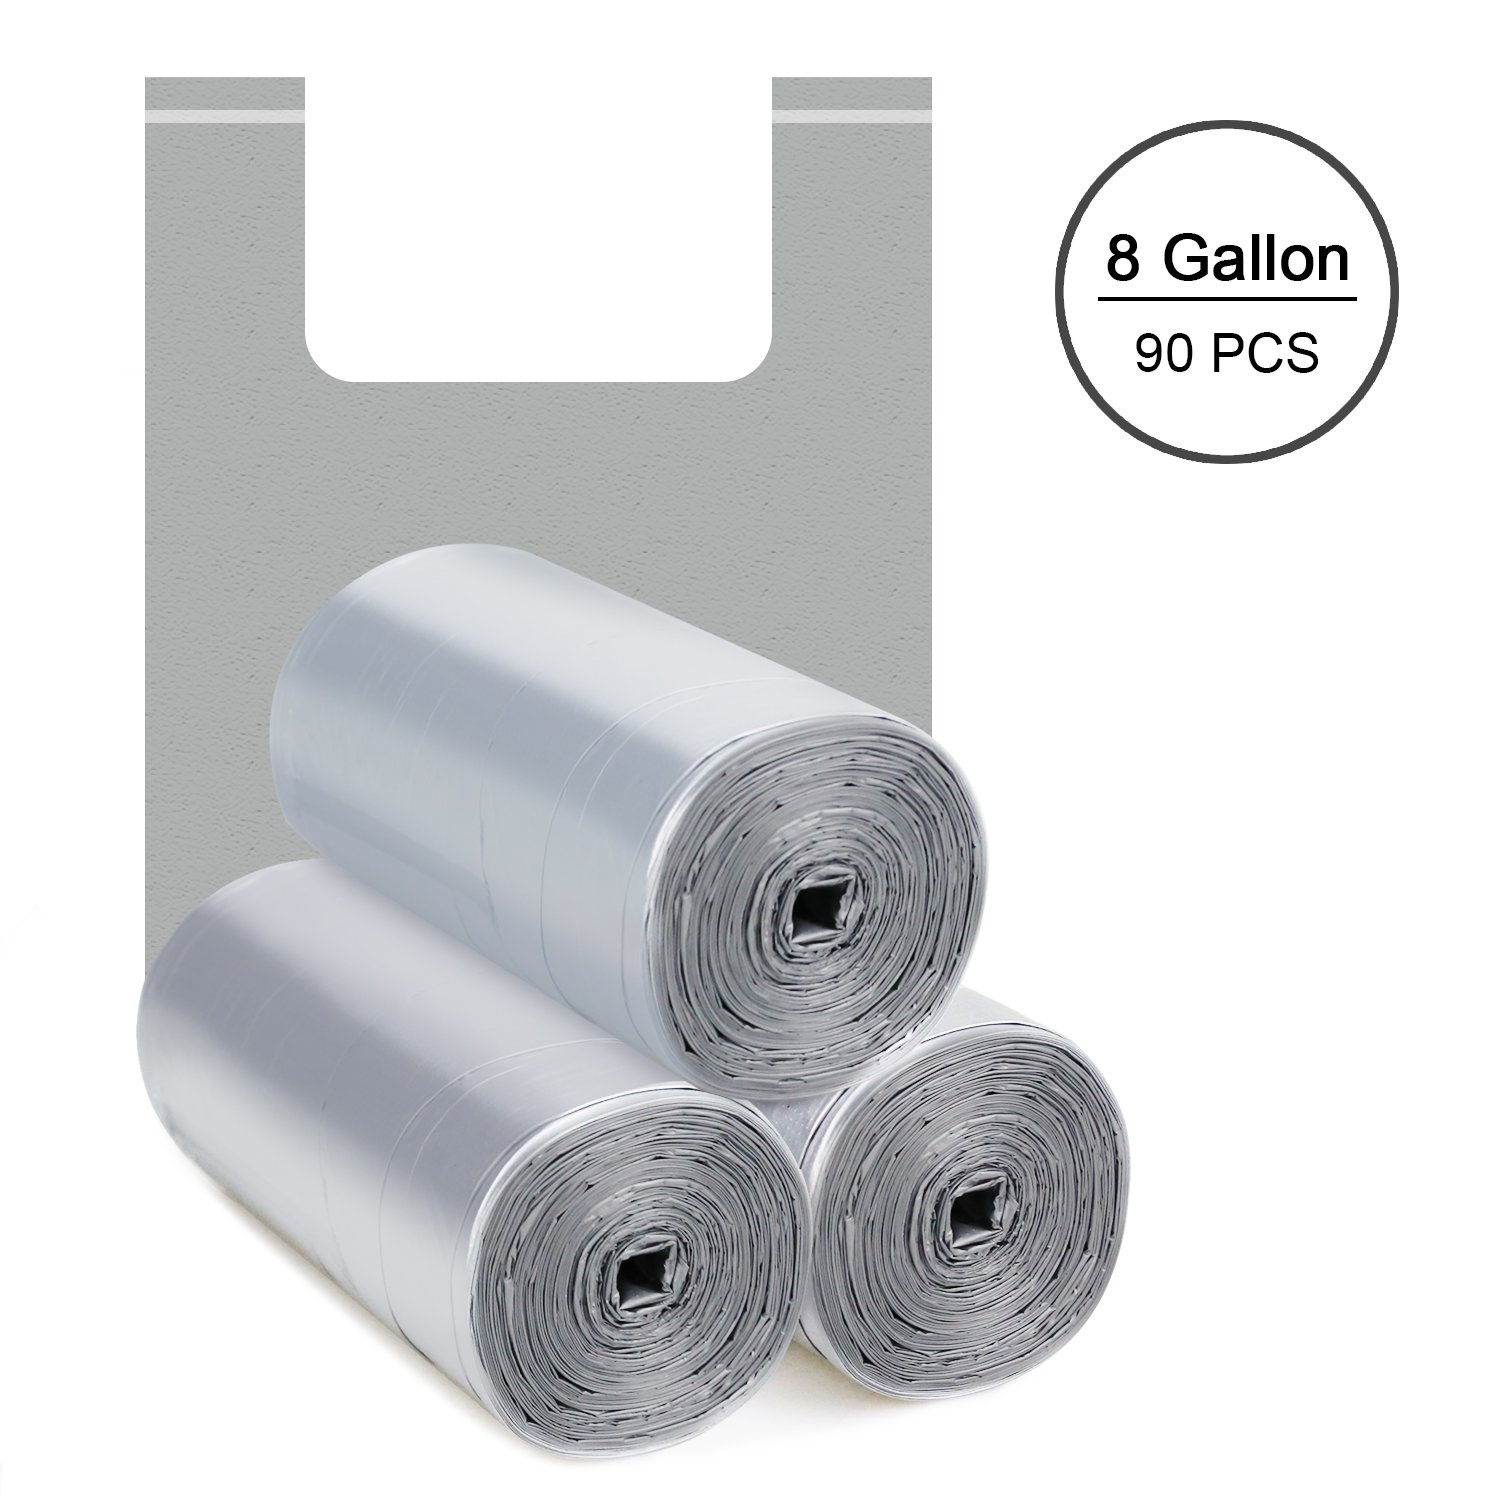 Topgalaxy.Z 5 Gallon Handle-Tie Small Trash Bags,0.8 Mil Extra Strong Little Garbage Bags for Kitchen,Bathroom Trash Can,Office,Car,Wastebasket Bags Size:19.68'' x 23.6'',90 Counts (Silver)